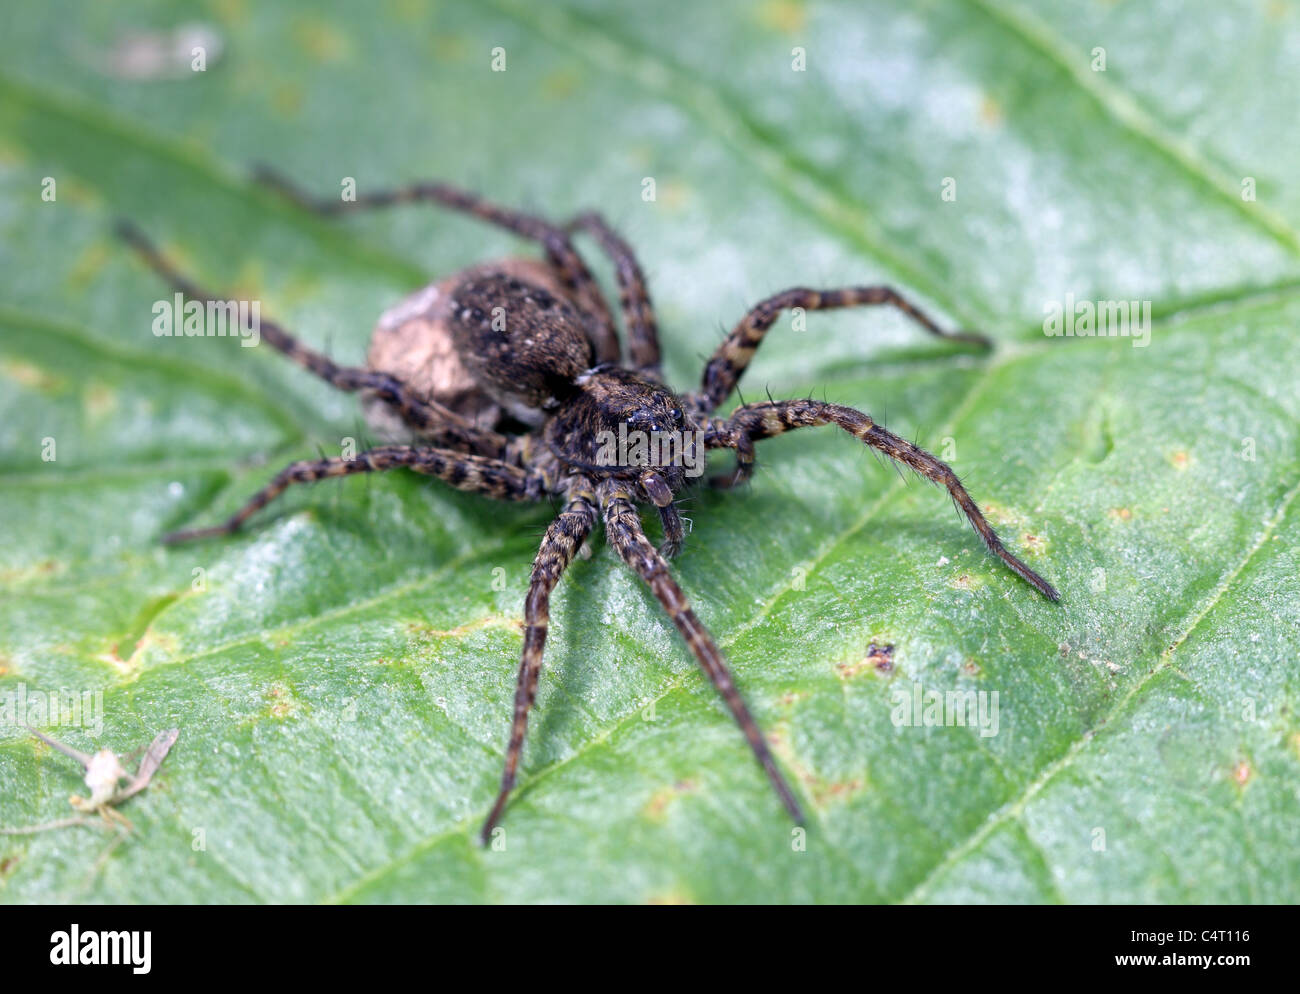 Female Wolf Spider Pardosa spp - Stock Image